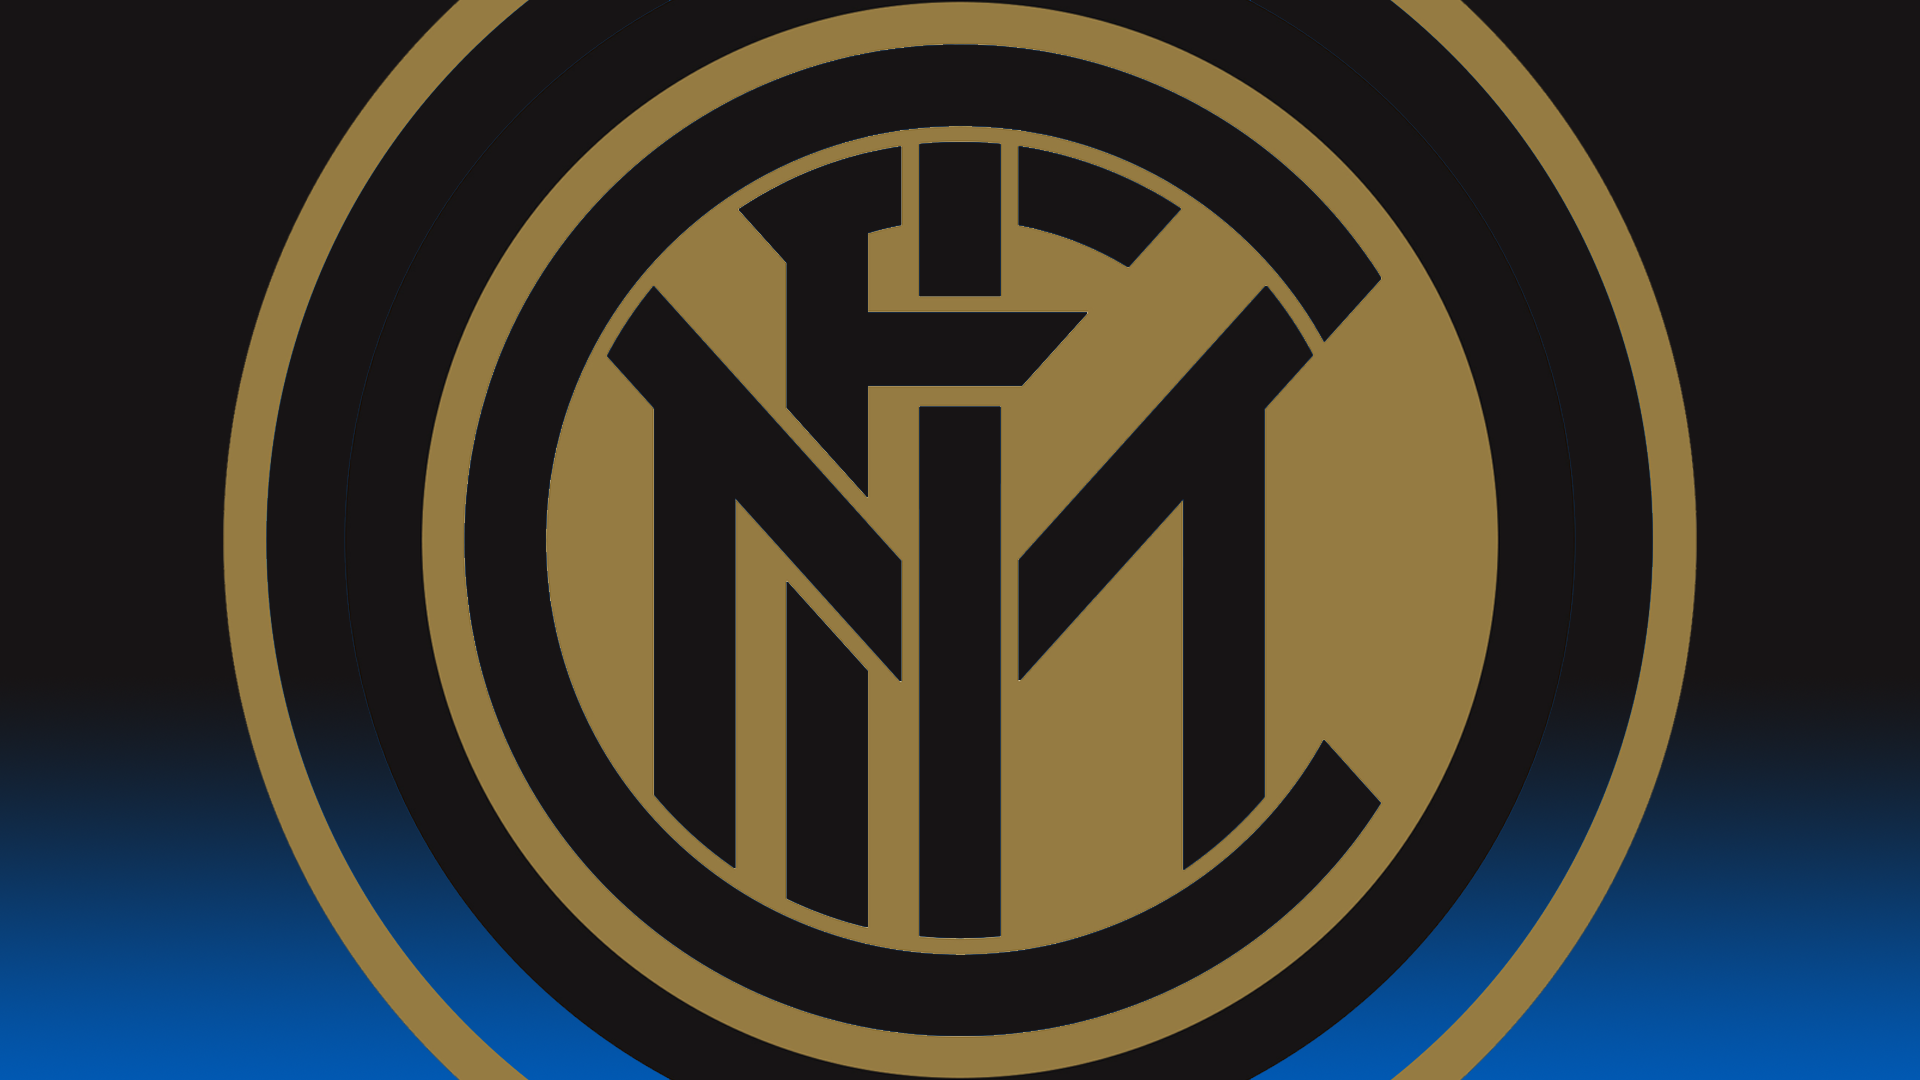 Inter Milan Hd Wallpaper Background Image 1920x1080 Id 987468 Wallpaper Abyss